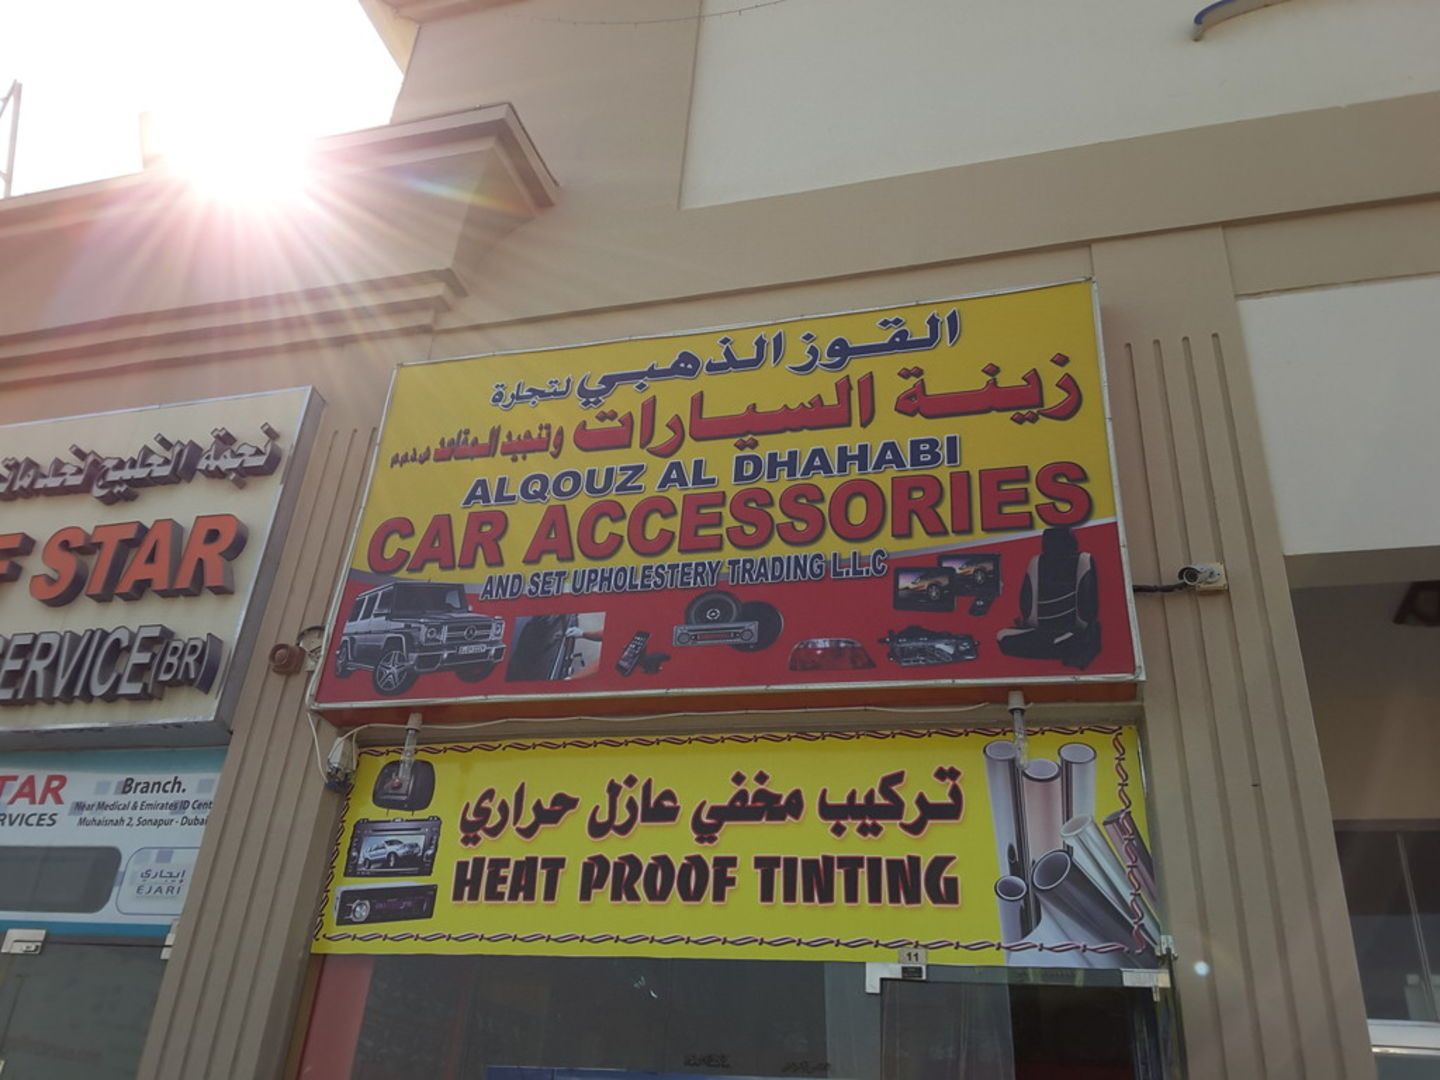 HiDubai-business-al-quoz-al-dhahabi-car-accessories-and-seat-upholstery-transport-vehicle-services-auto-spare-parts-accessories-al-quoz-4-dubai-2